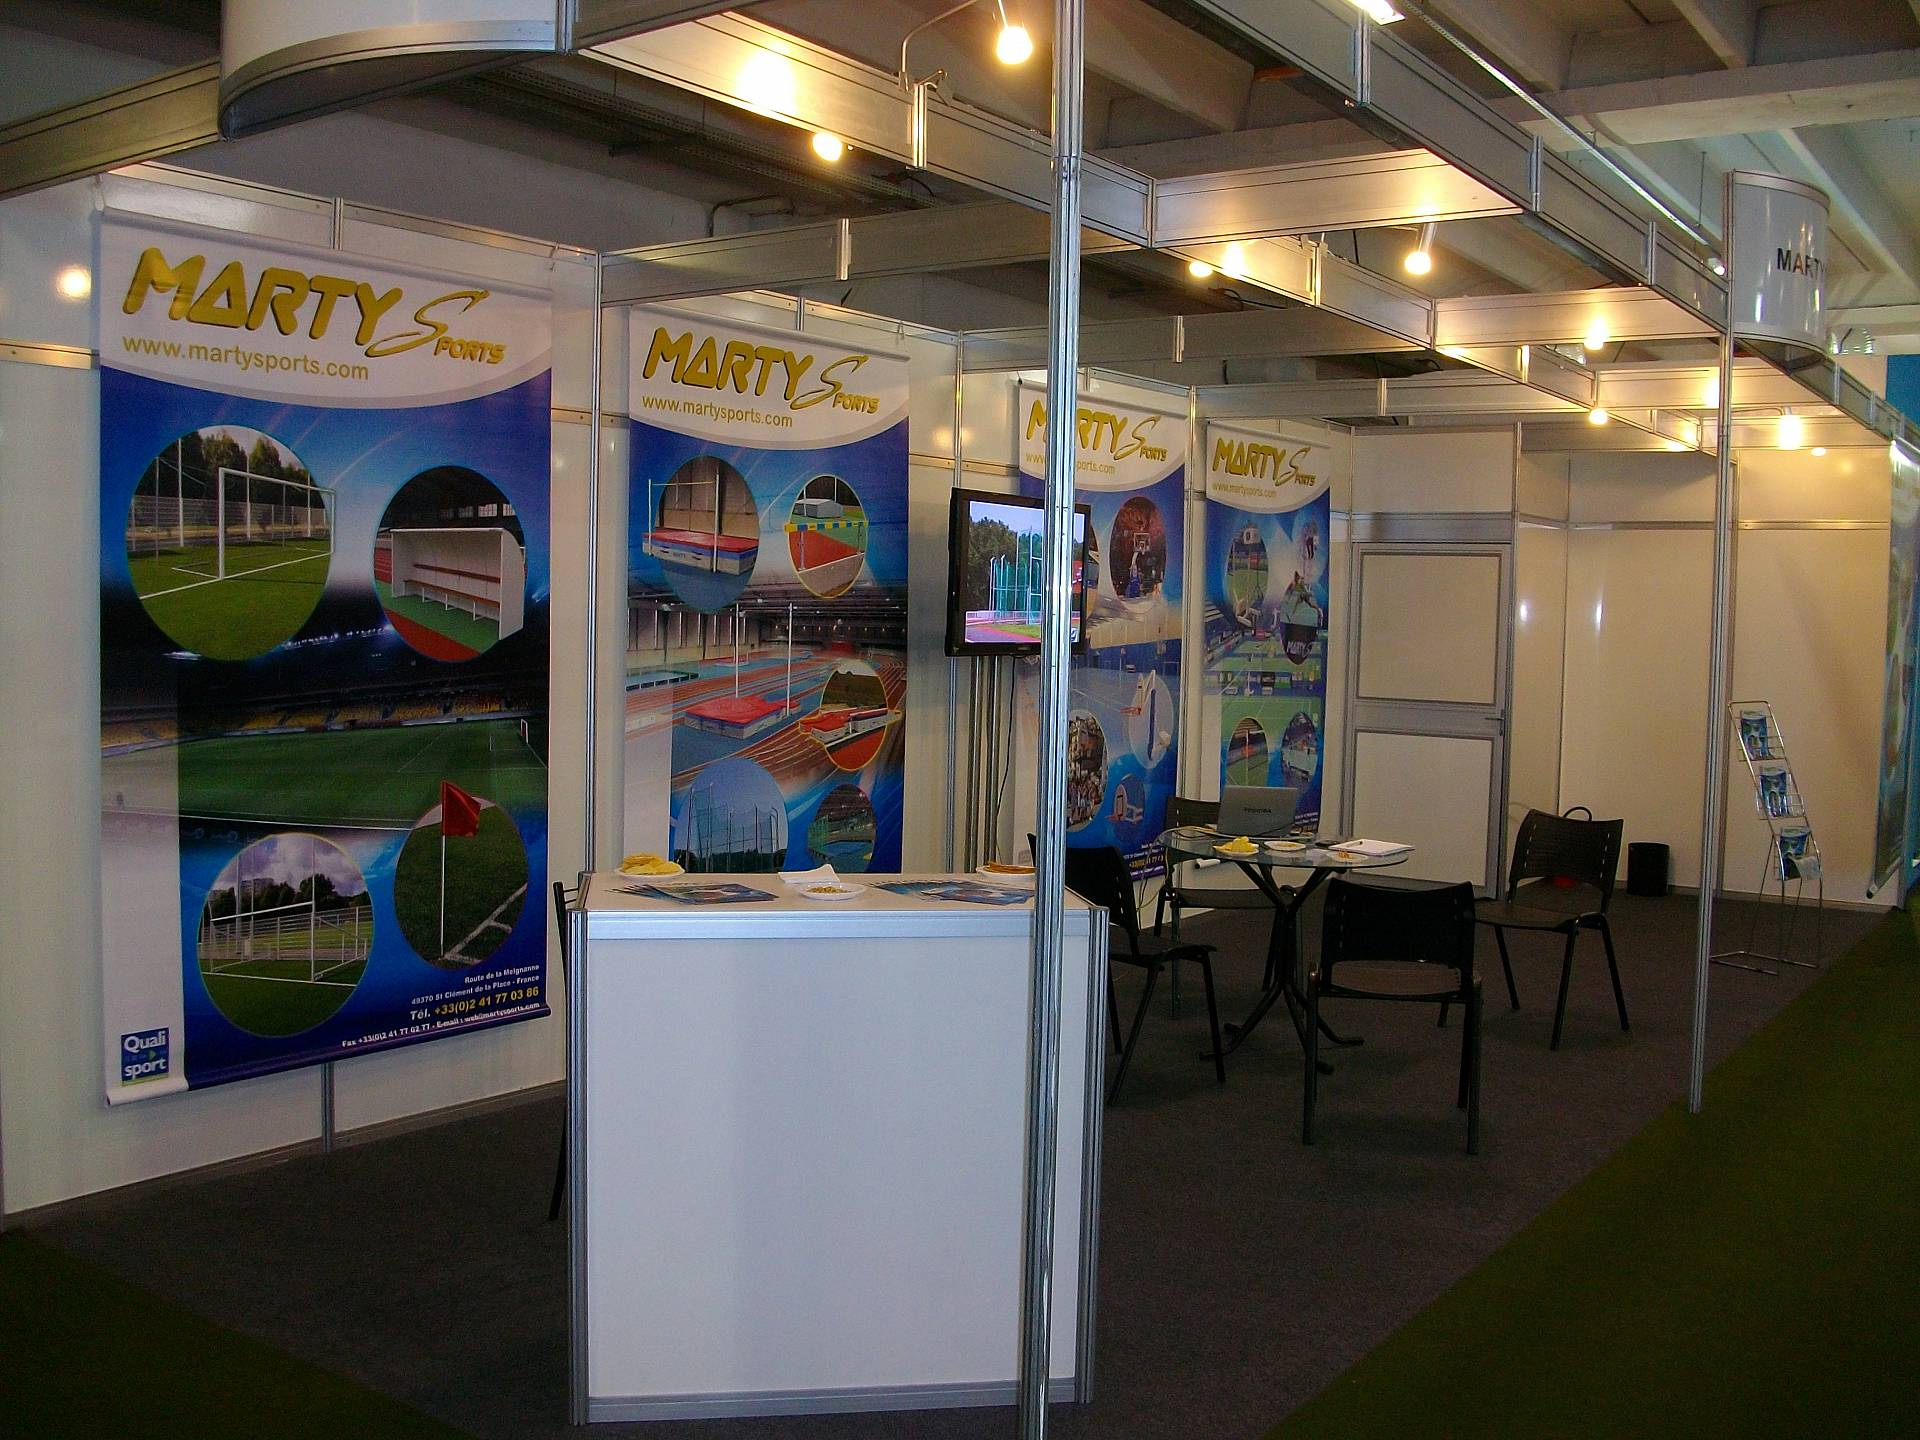 stand_expo_estadio.jpg